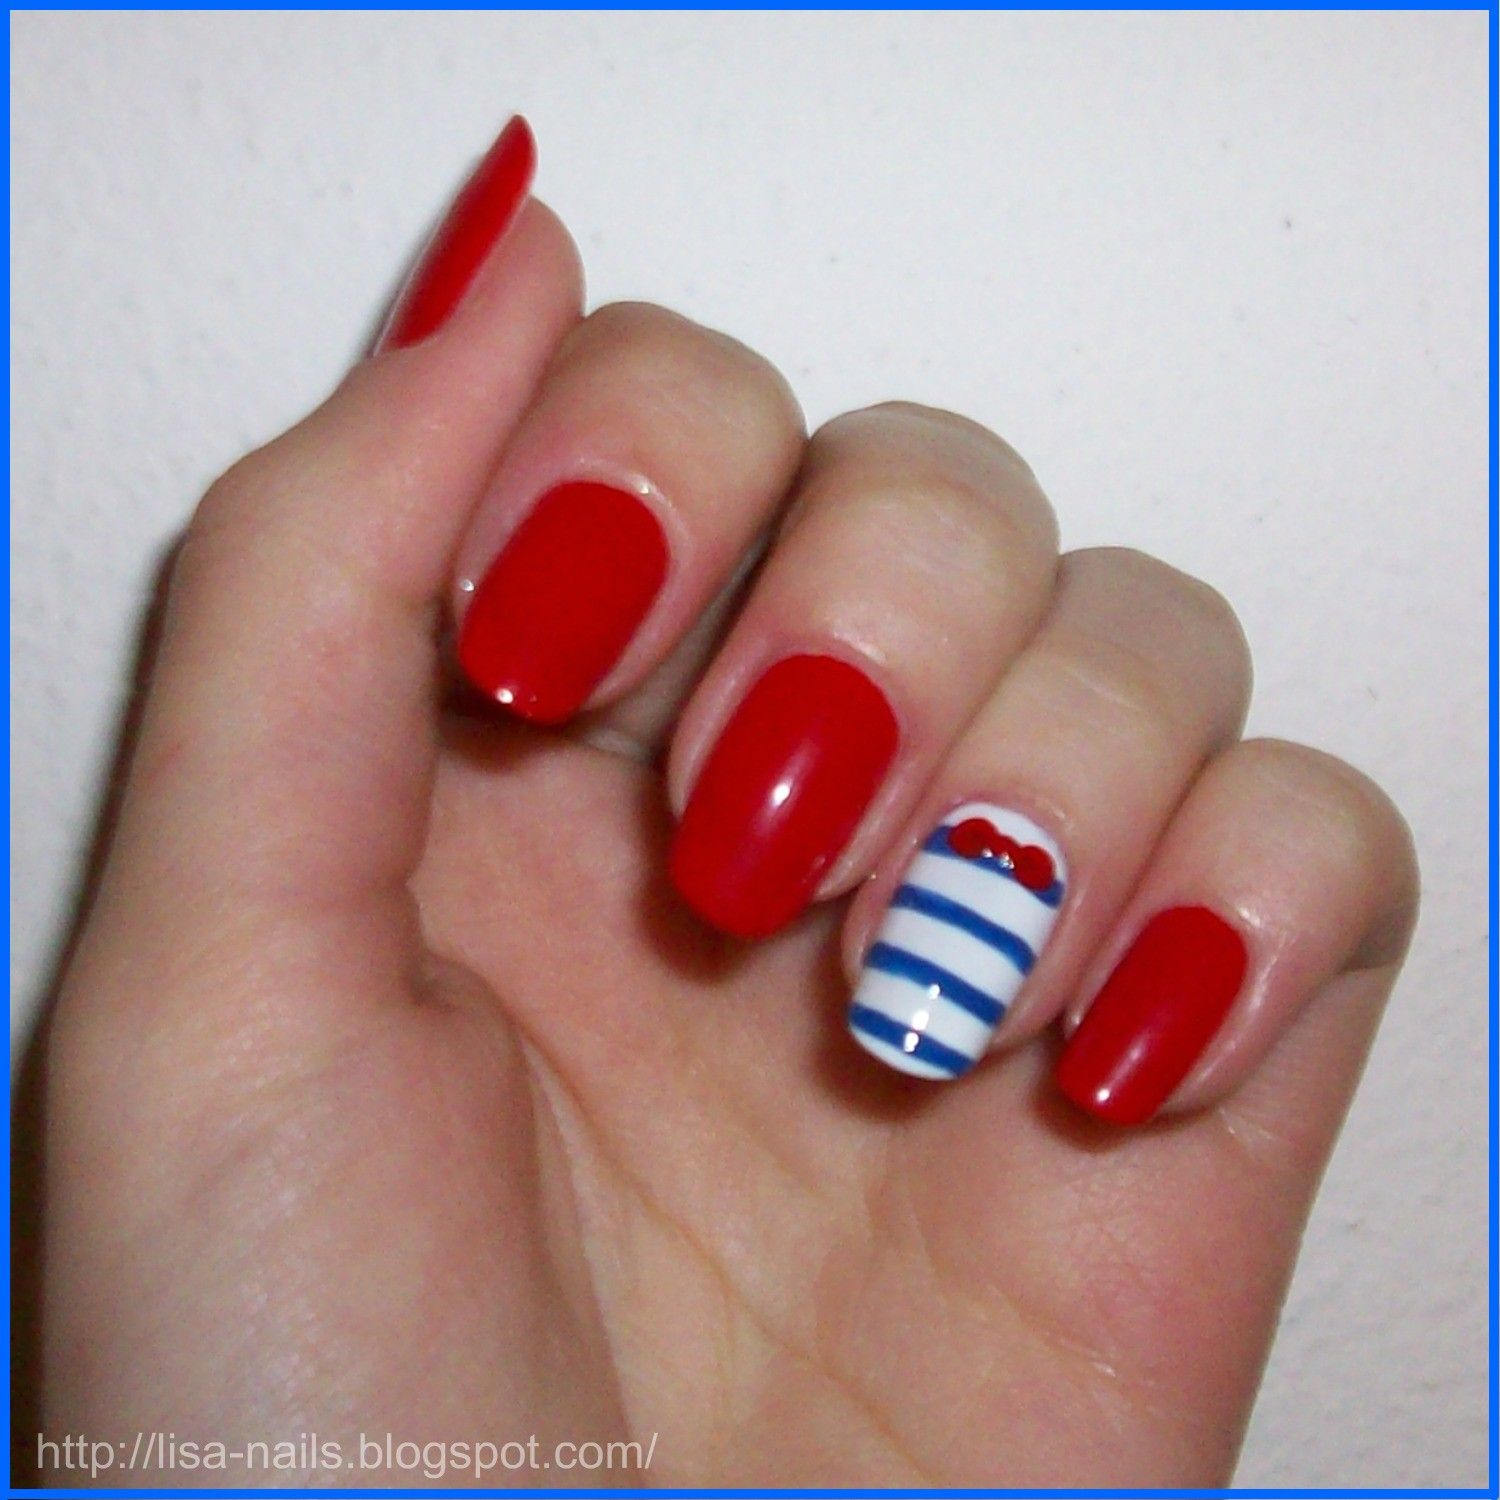 Nautical nail designs very cute and quick marine nails pedis nautical nail designs very cute and quick marine nails prinsesfo Gallery